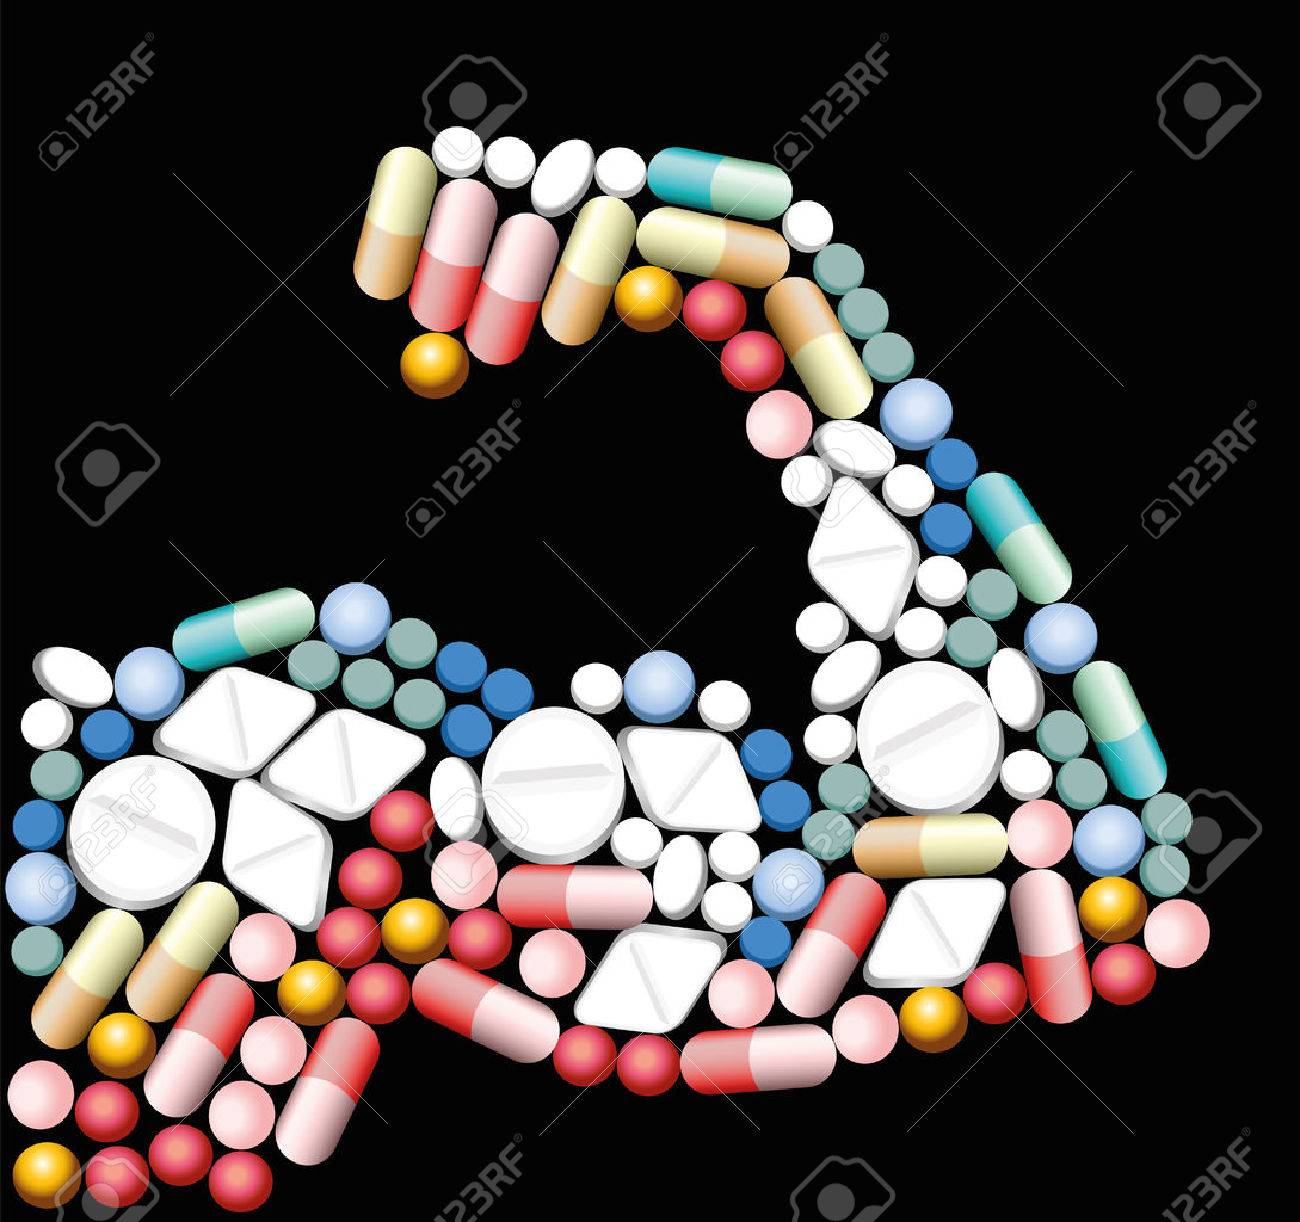 Anabolic drugs, pills and capsules, that shape the biceps of a muscular man. Illustration over black background. Standard-Bild - 48052922